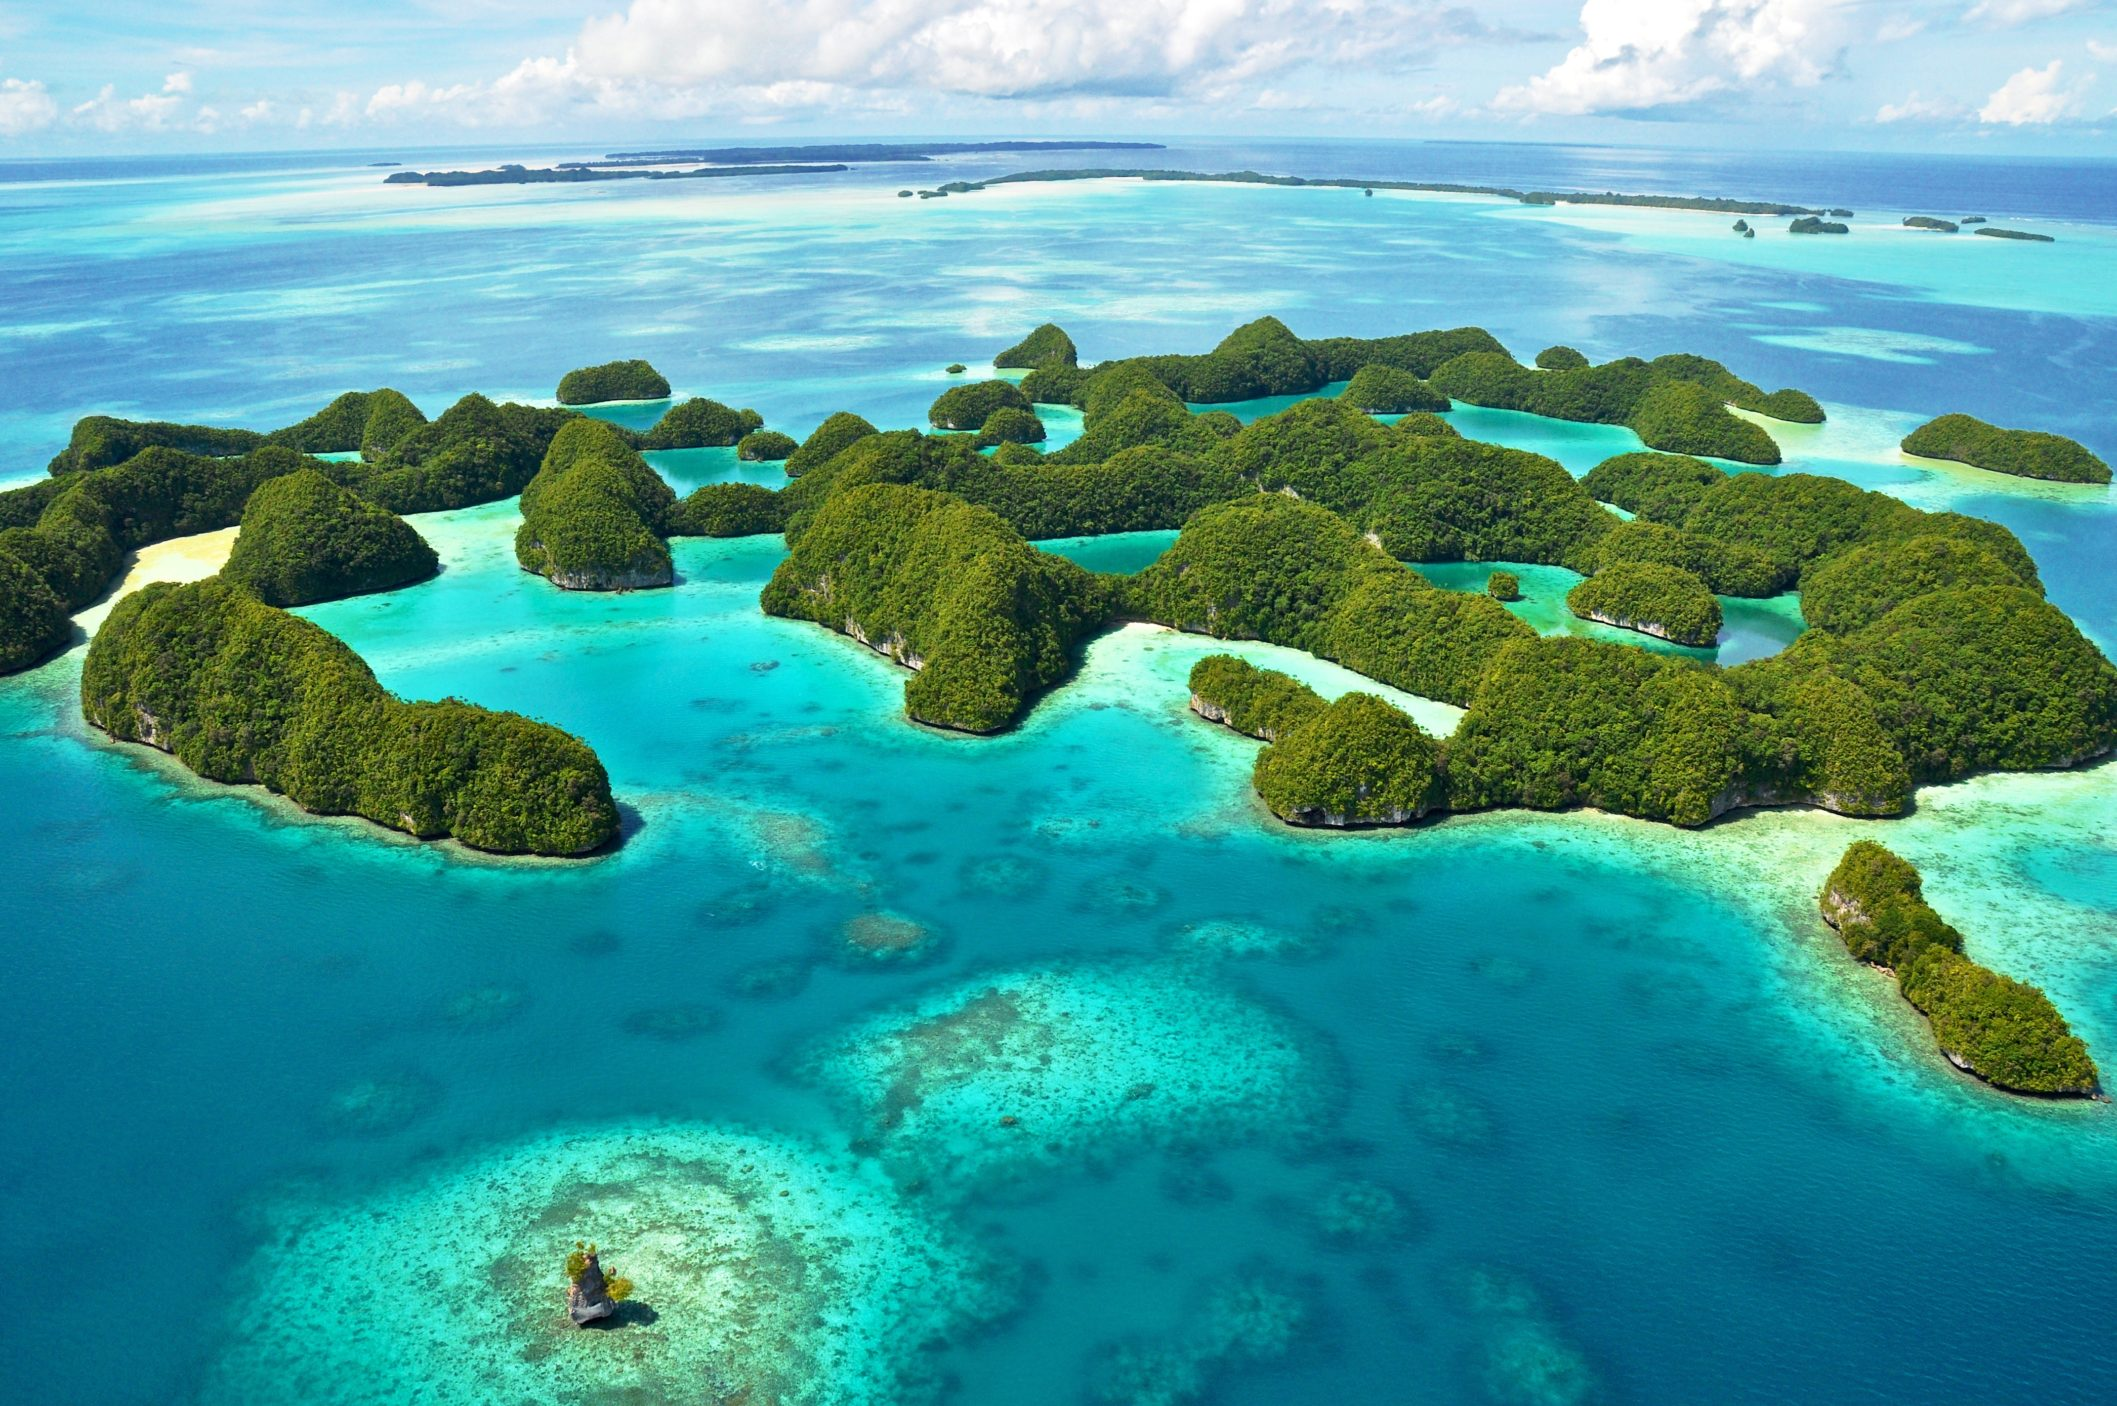 Palau - United States Department of State